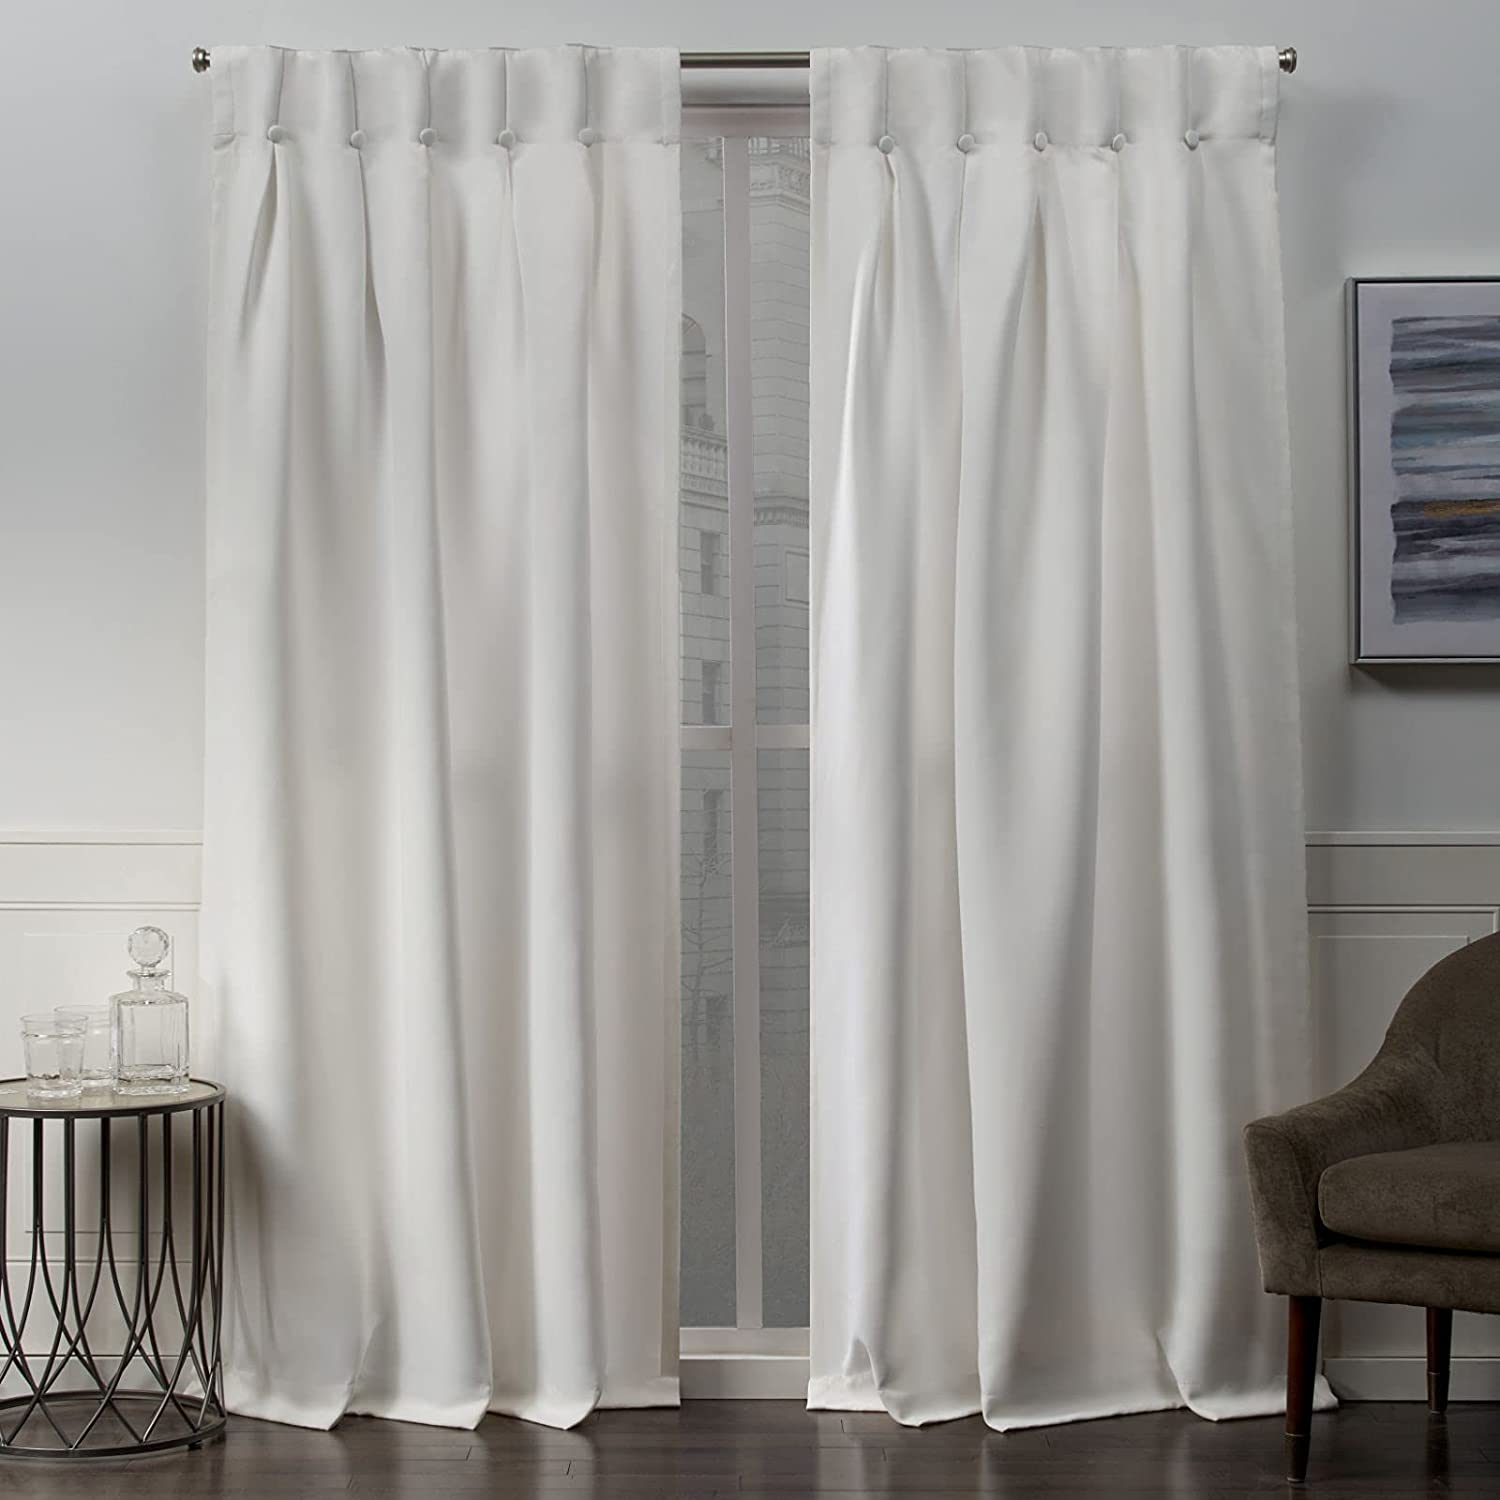 Exclusive Home New products world's highest quality popular Curtains EH8367-01 2-96B Bu Manufacturer OFFicial shop Sateen Blackout Woven